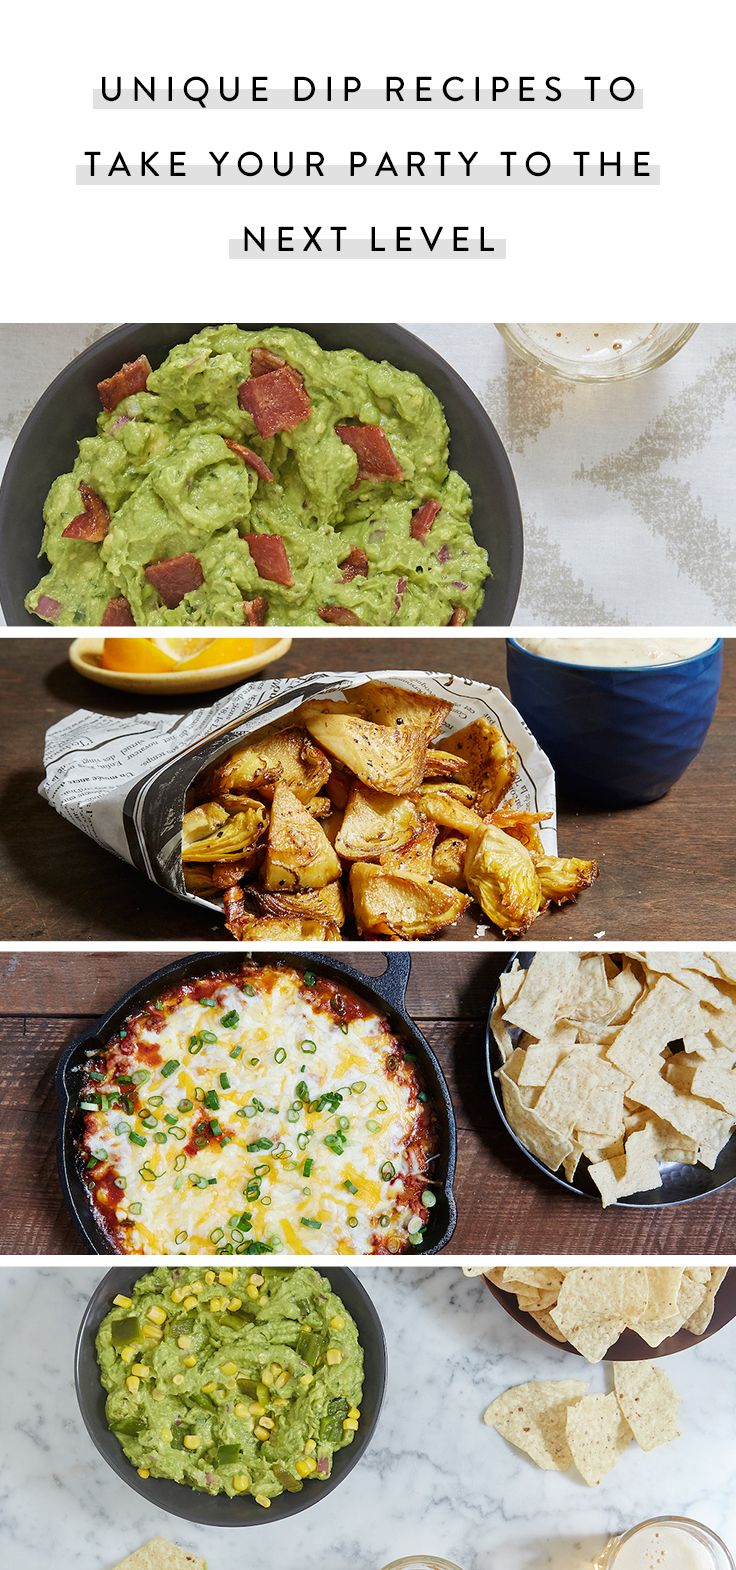 Wverything from avocado hummus to Snickers dip. Plus, get the recipes for 11 crunchy foods to dip that aren't chips via @PureWow